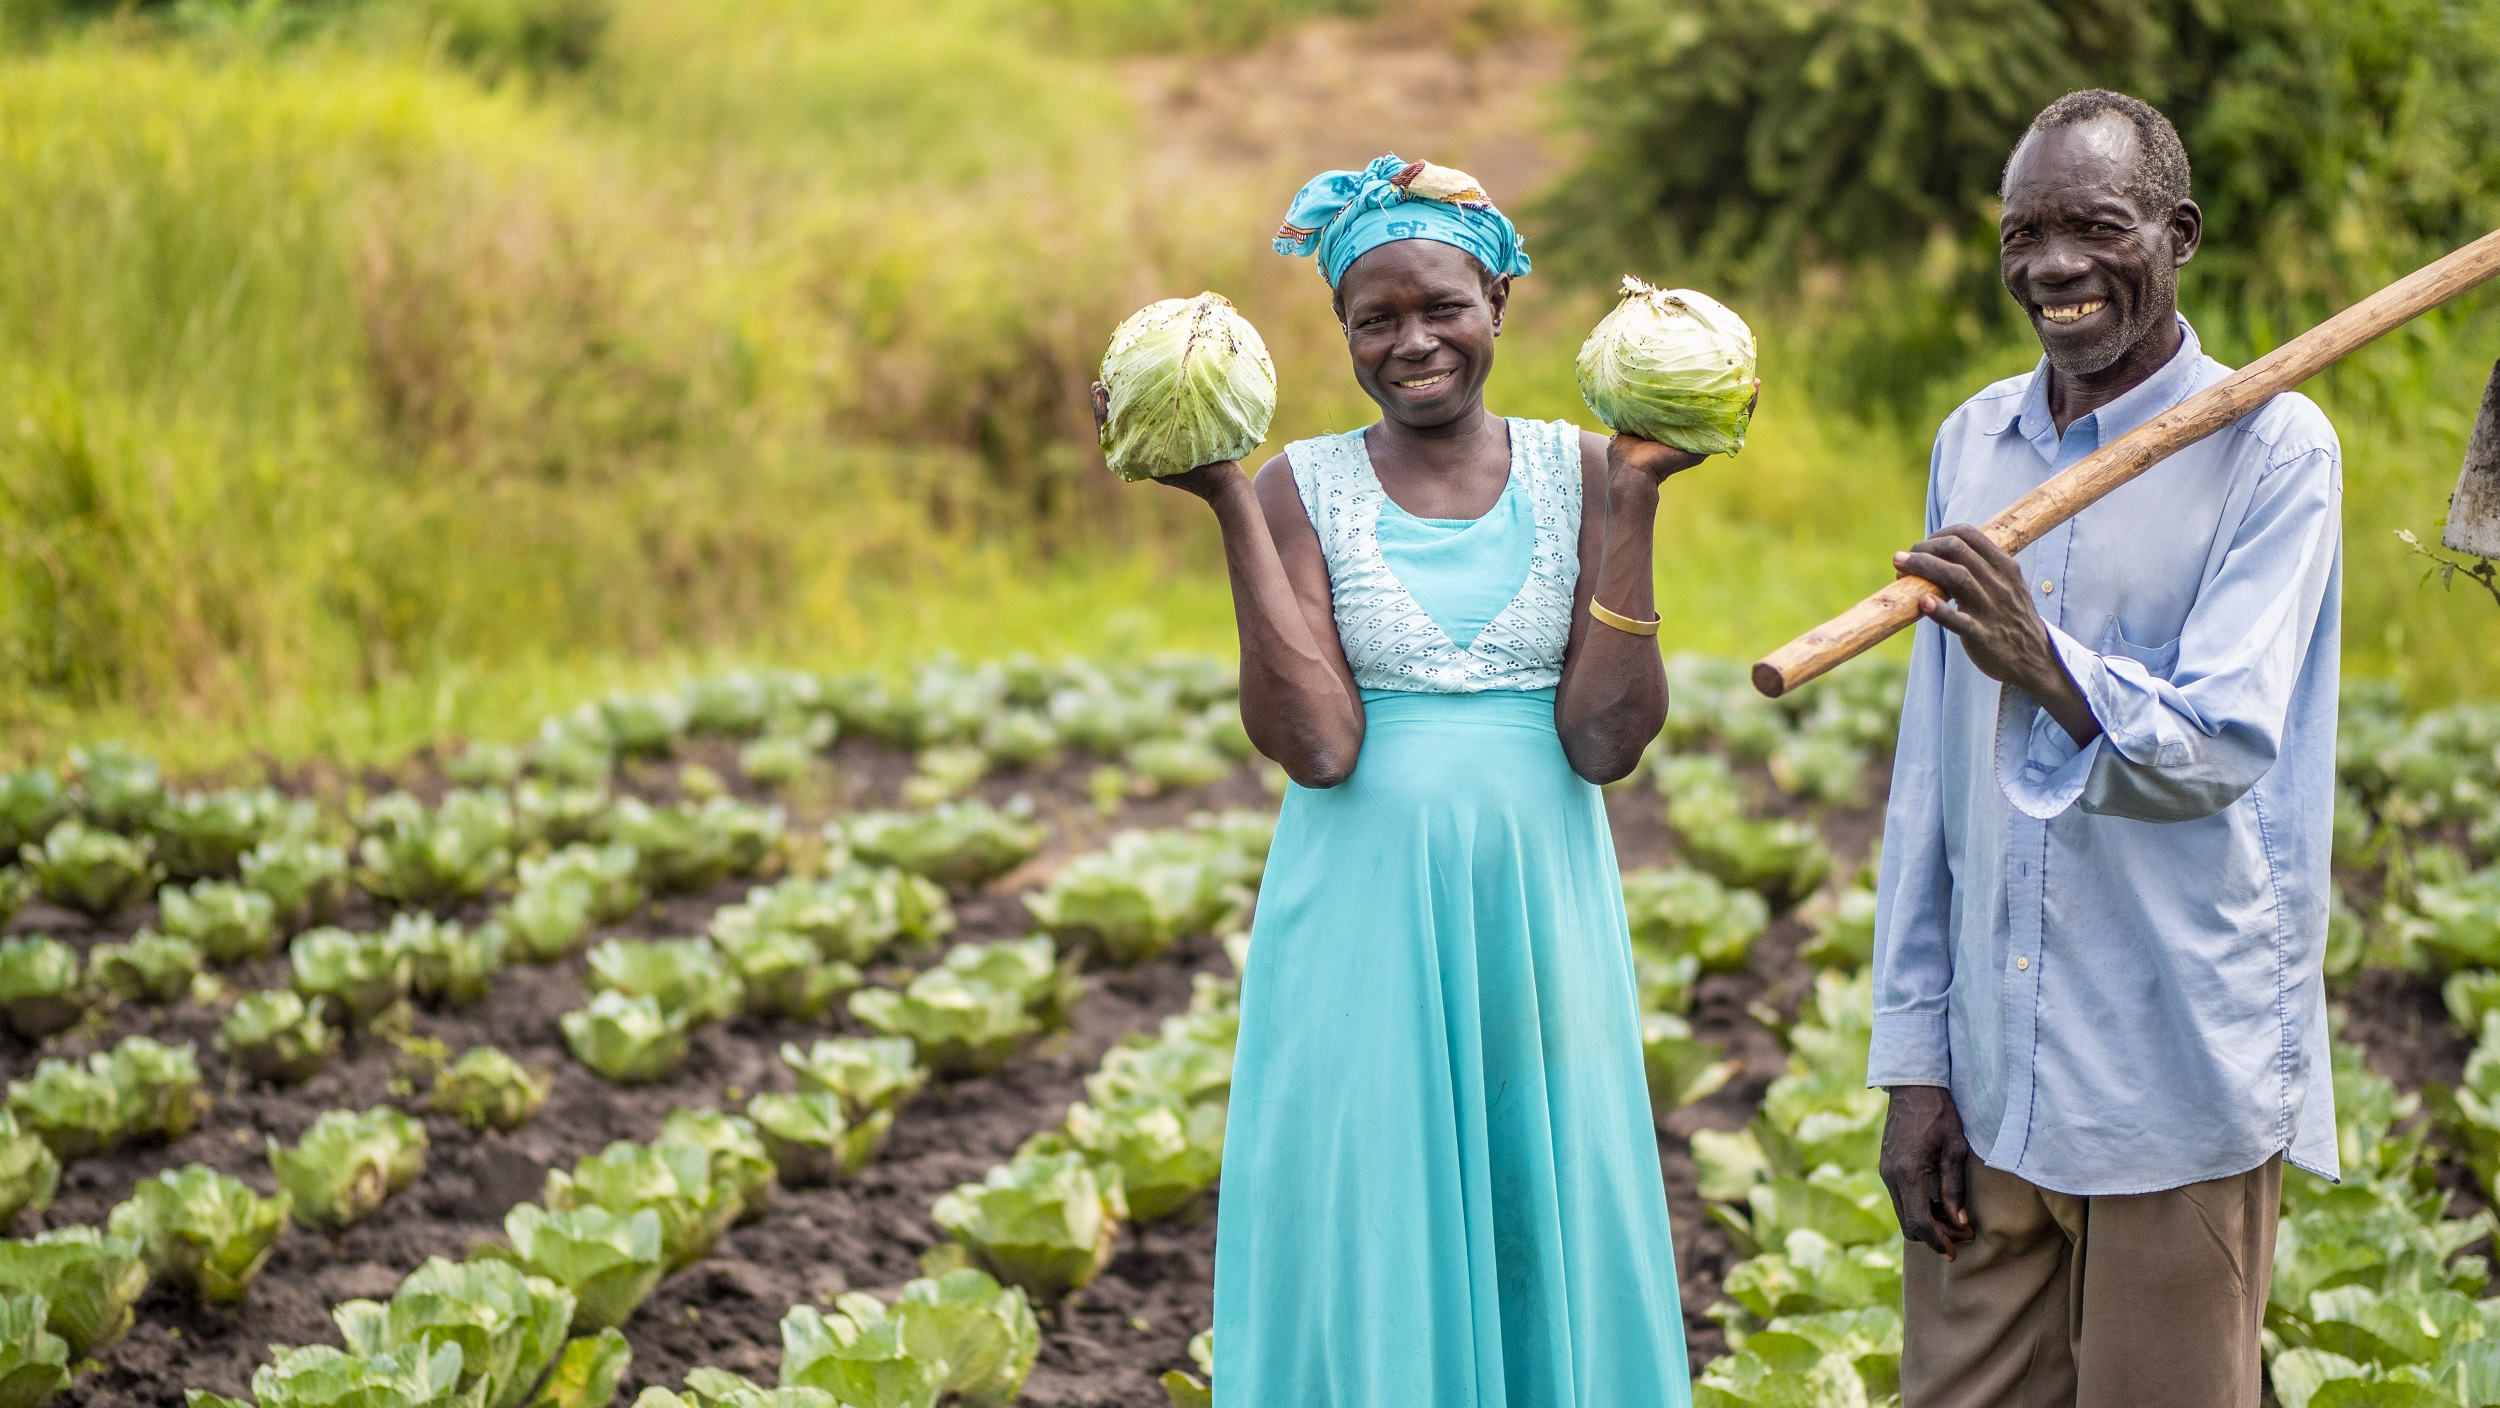 Joska and her huband in their garden with cabbages